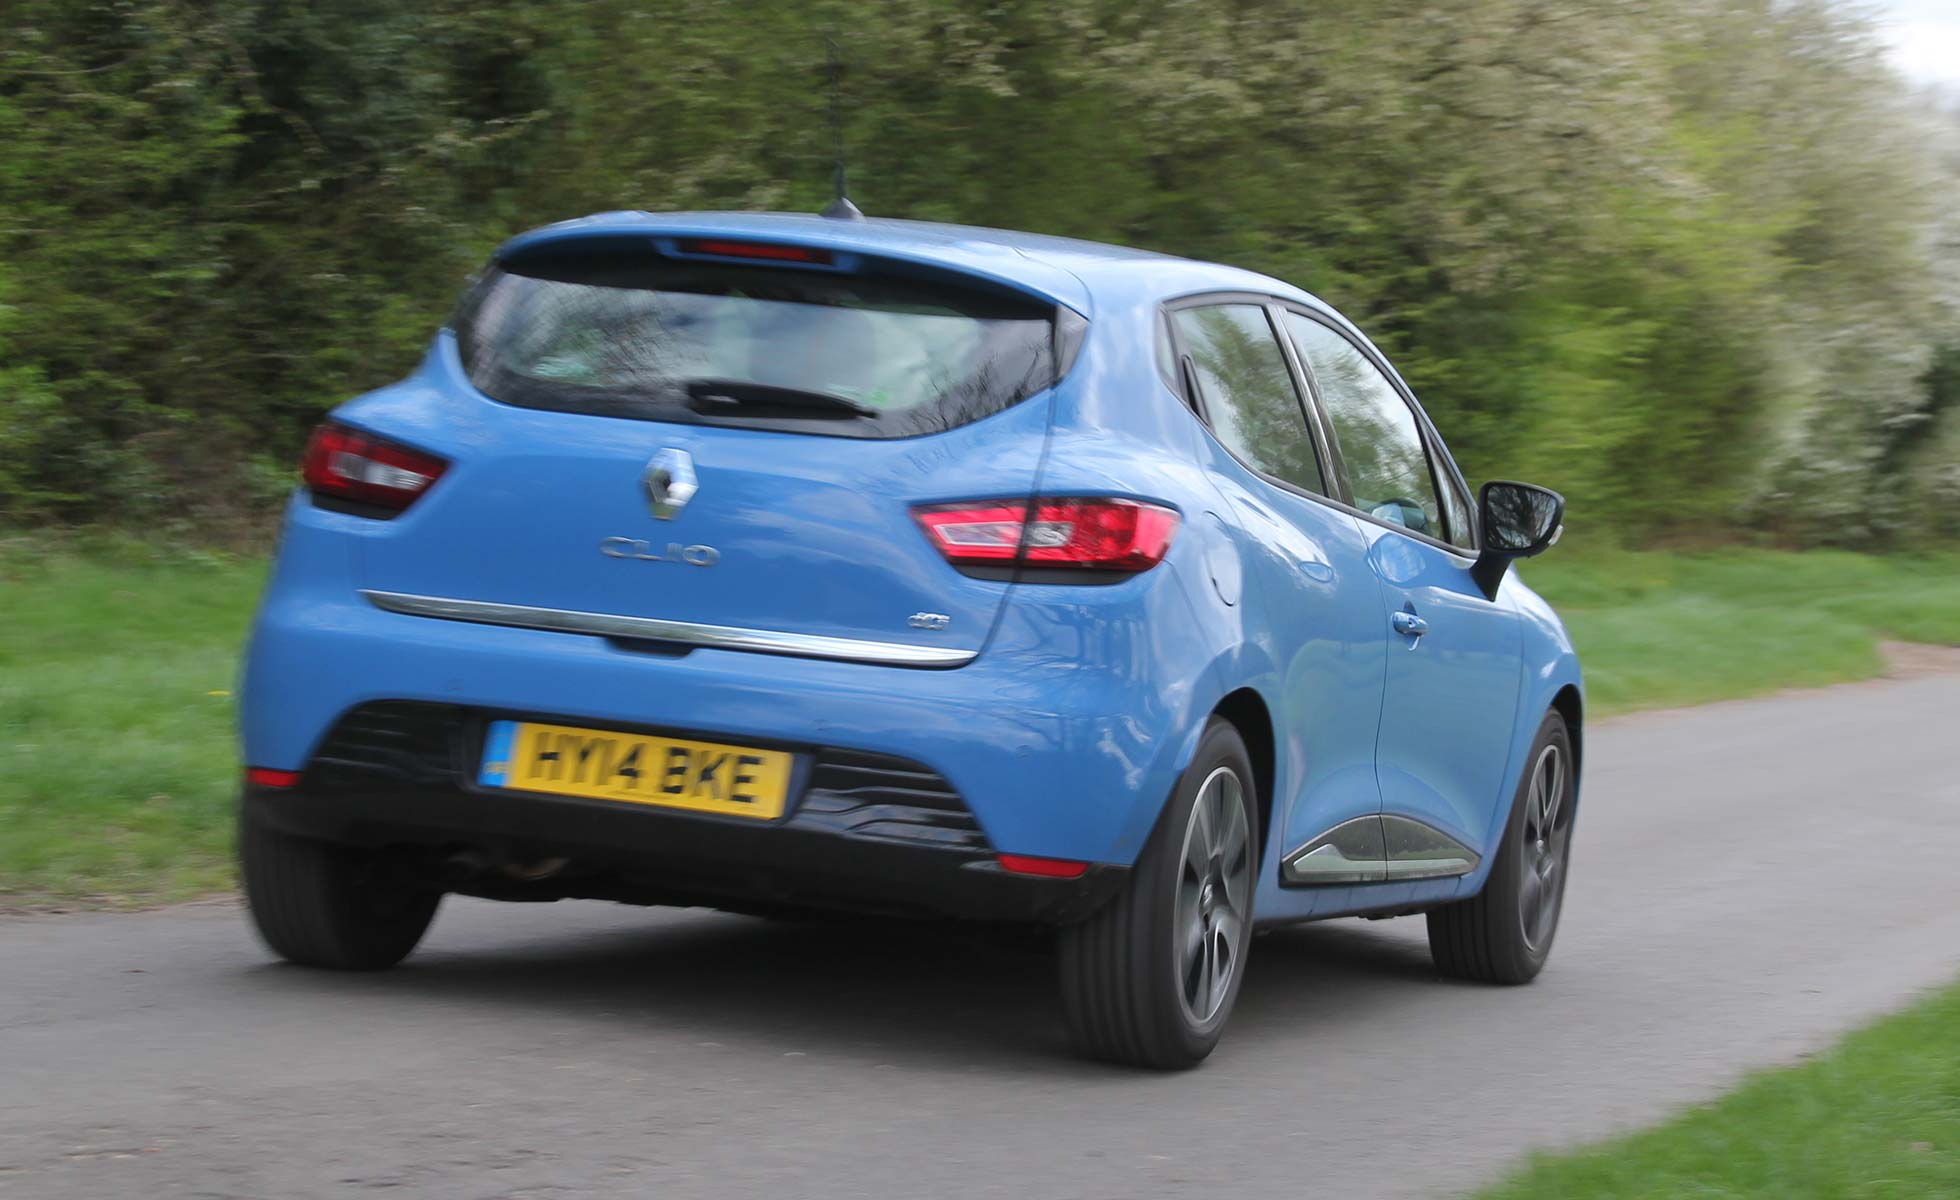 Renault Clio Dynamique Medianav dCi 90 Eco2 Stop & Start – long-term review